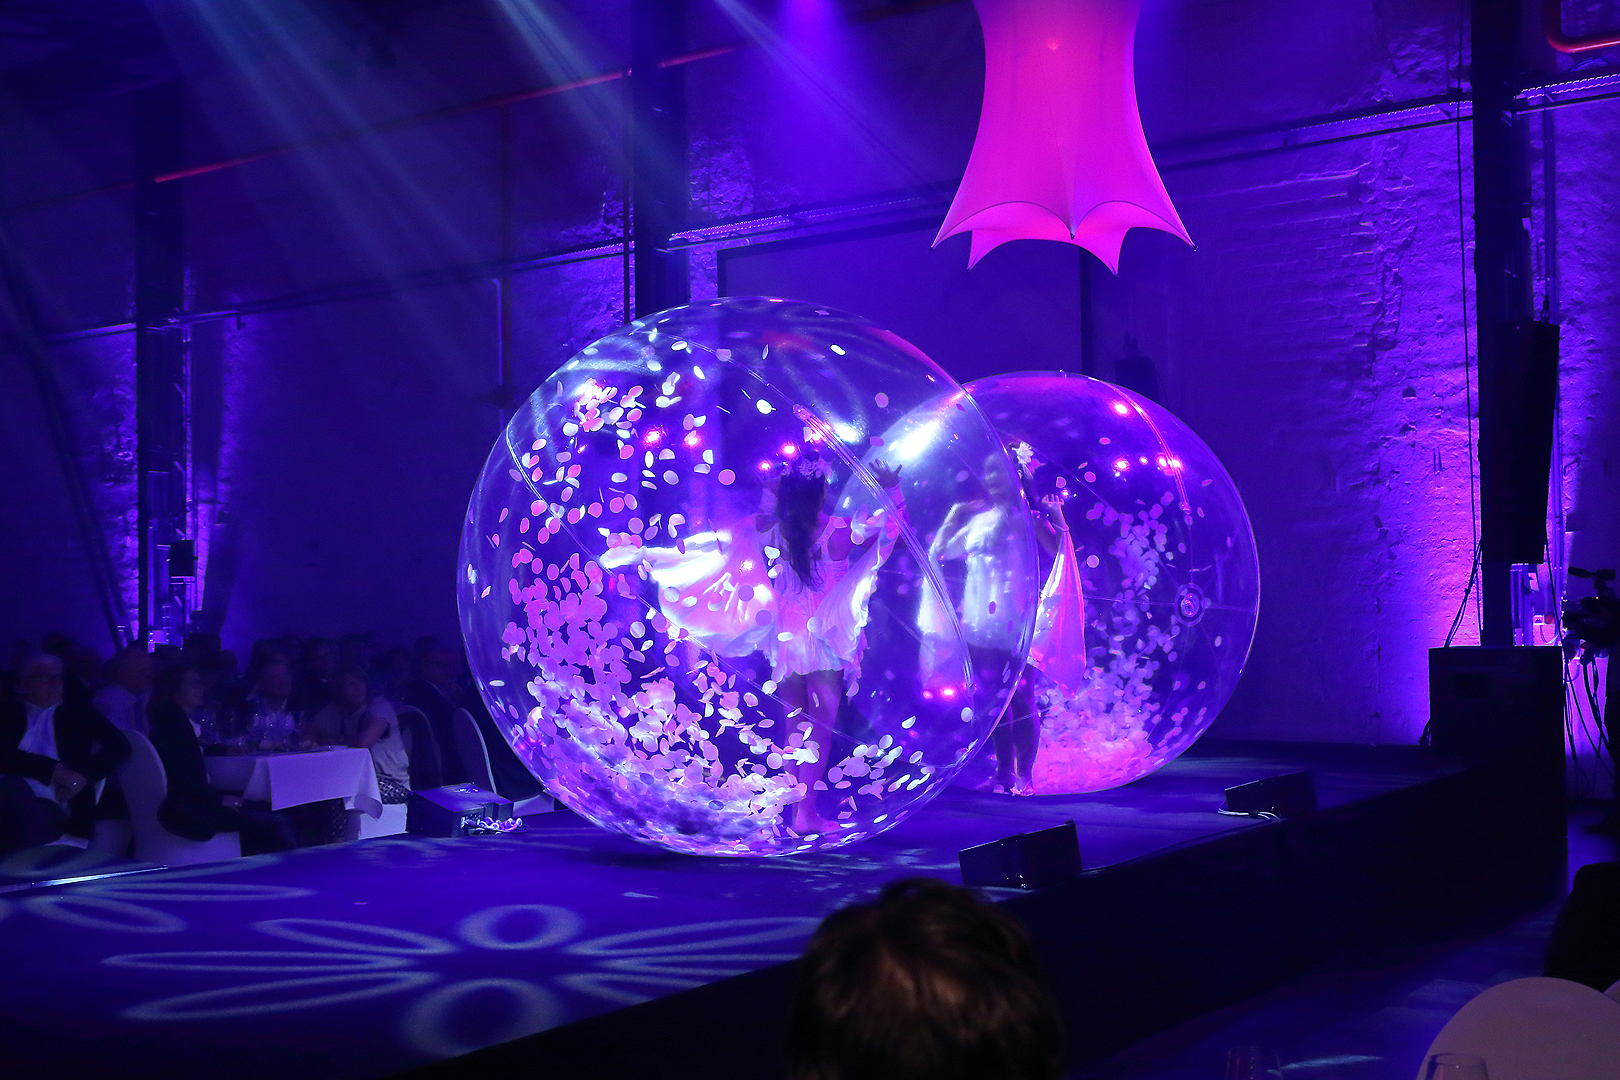 tranparent bubble dance show in